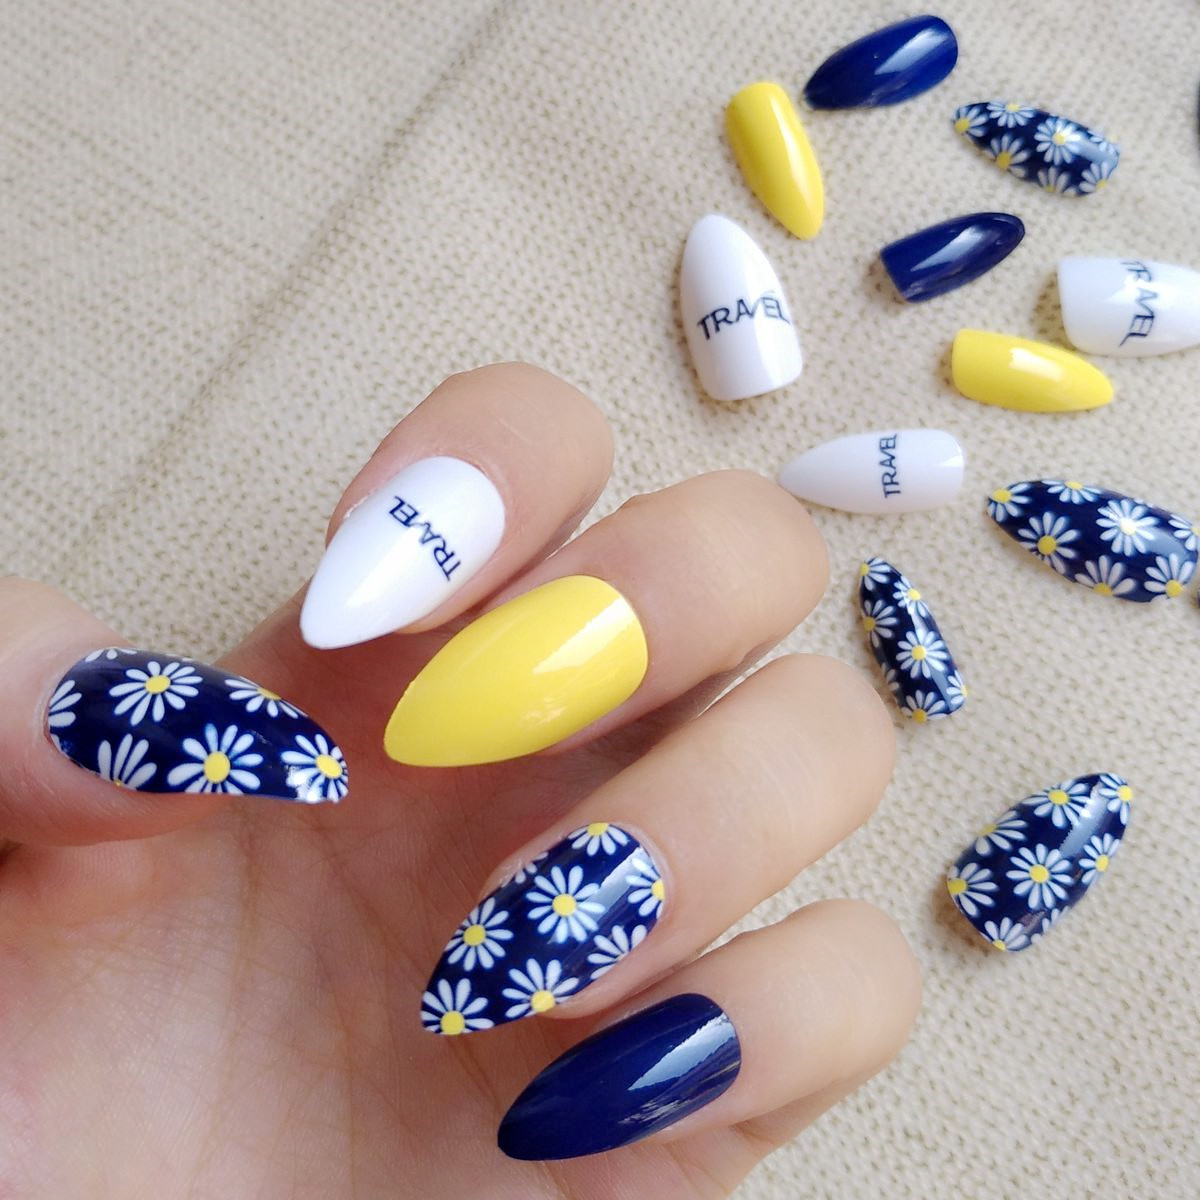 24Pcs Navy Blue Fake Nail Yellow Short Stiletto Nails Full Cover False White Daisy DIY Art Manicure Tools Z132 In From Beauty Health